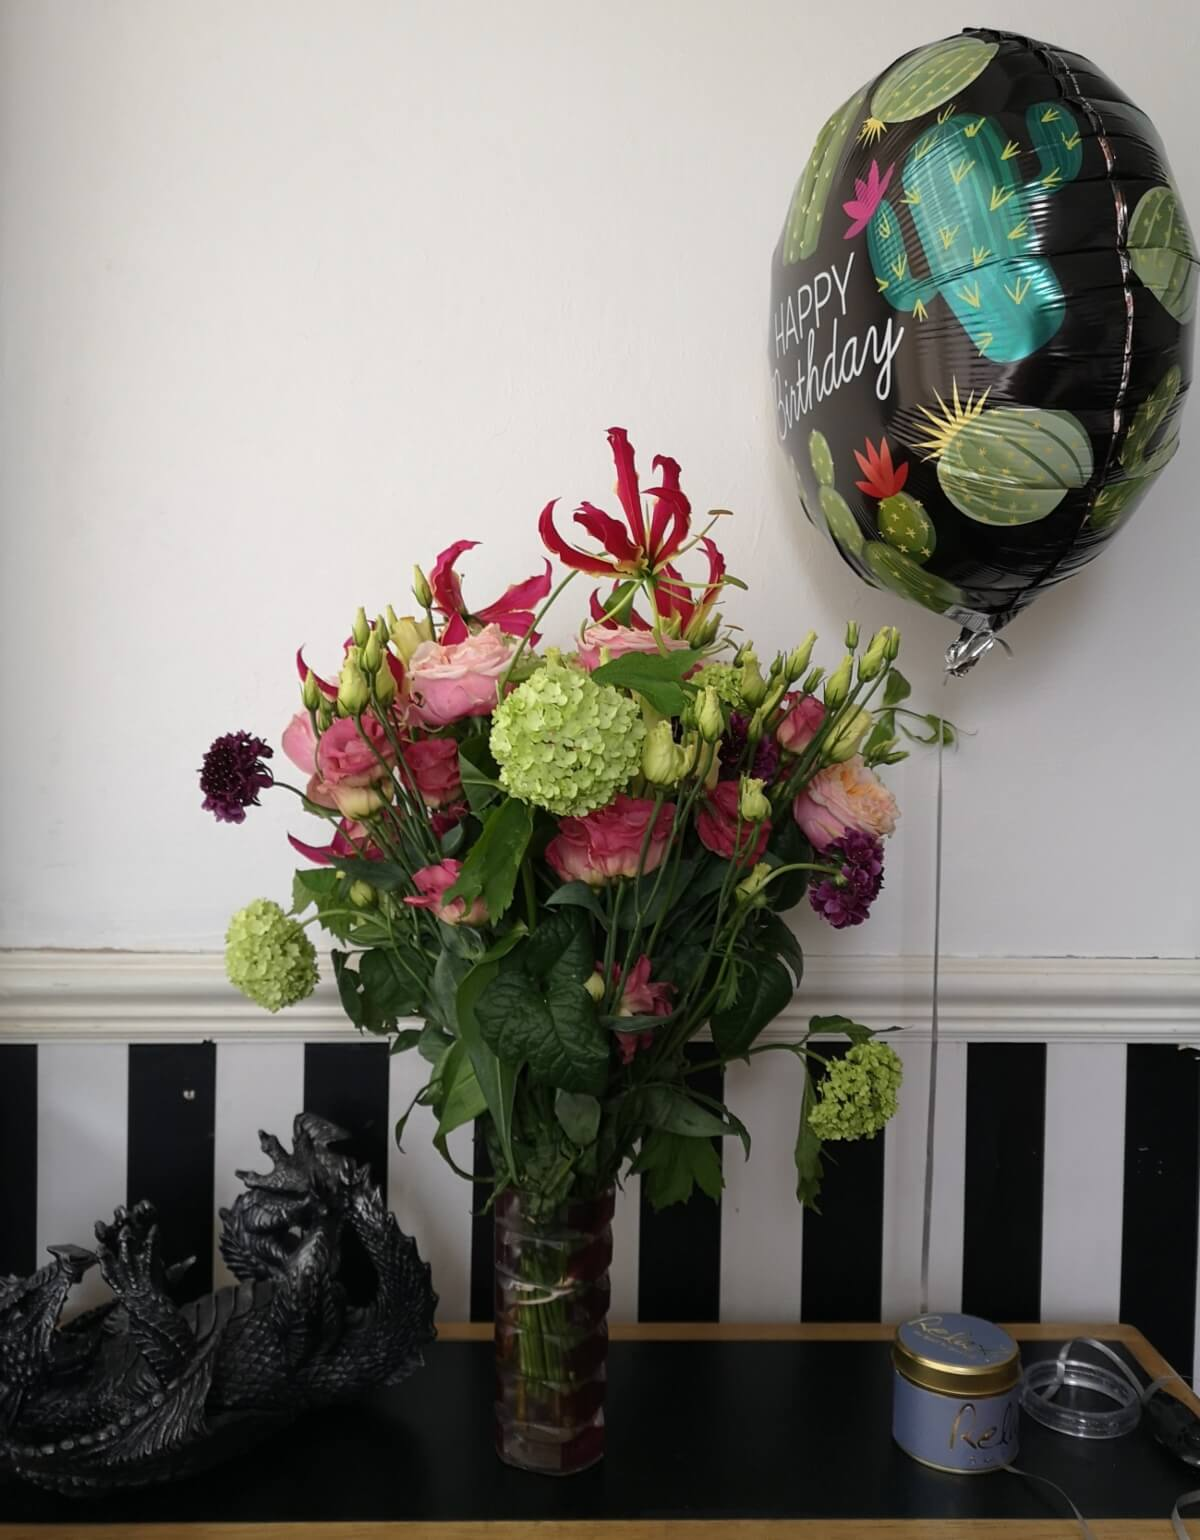 A bouquet of flowers on a table in a vase with a happy birthday balloon next to them